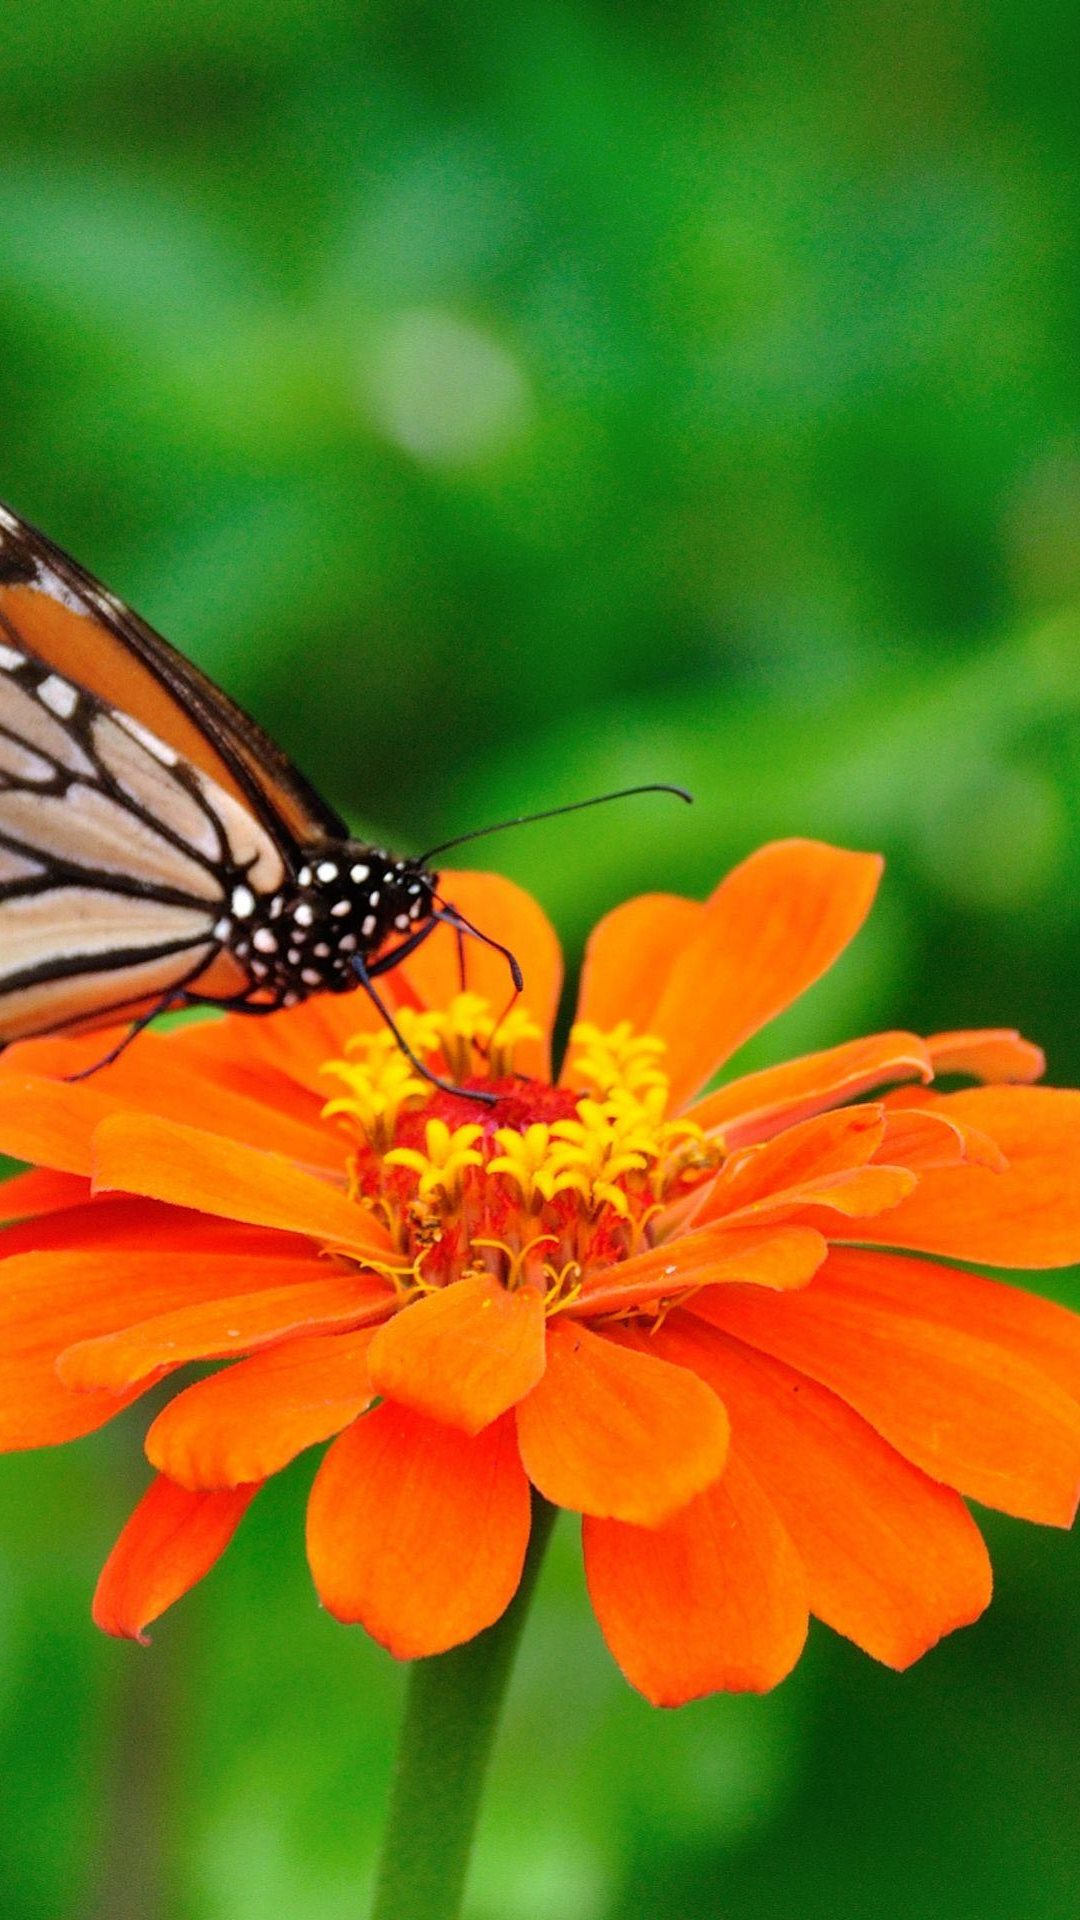 Hd Thanksgiving Wallpaper Free Butterfly Wallpaper For Android Pixelstalk Net